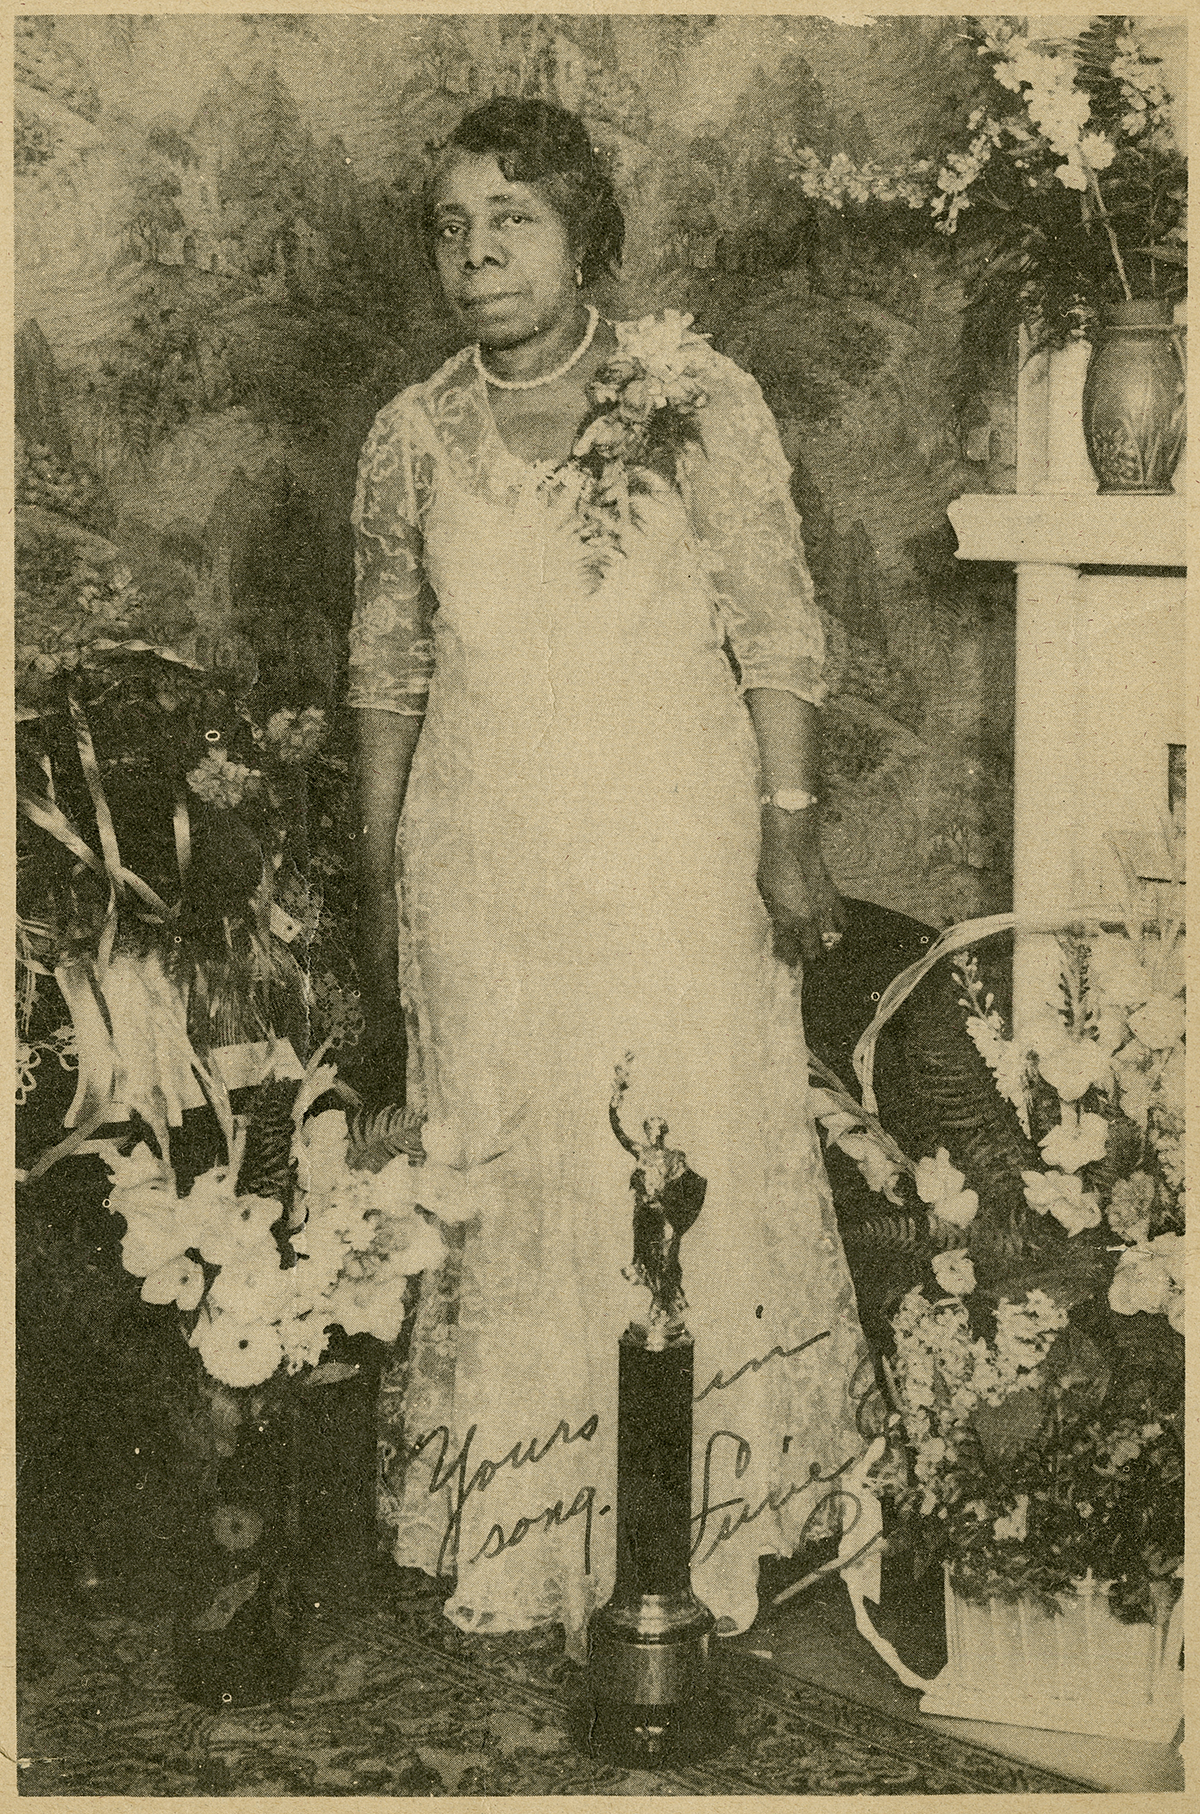 Lucie E. Campbell,  in  Soul-Stirring Songs for All Religious Occasions  (1947), signed. Image courtesy of the Archives of African American Music and Culture, Indiana University.